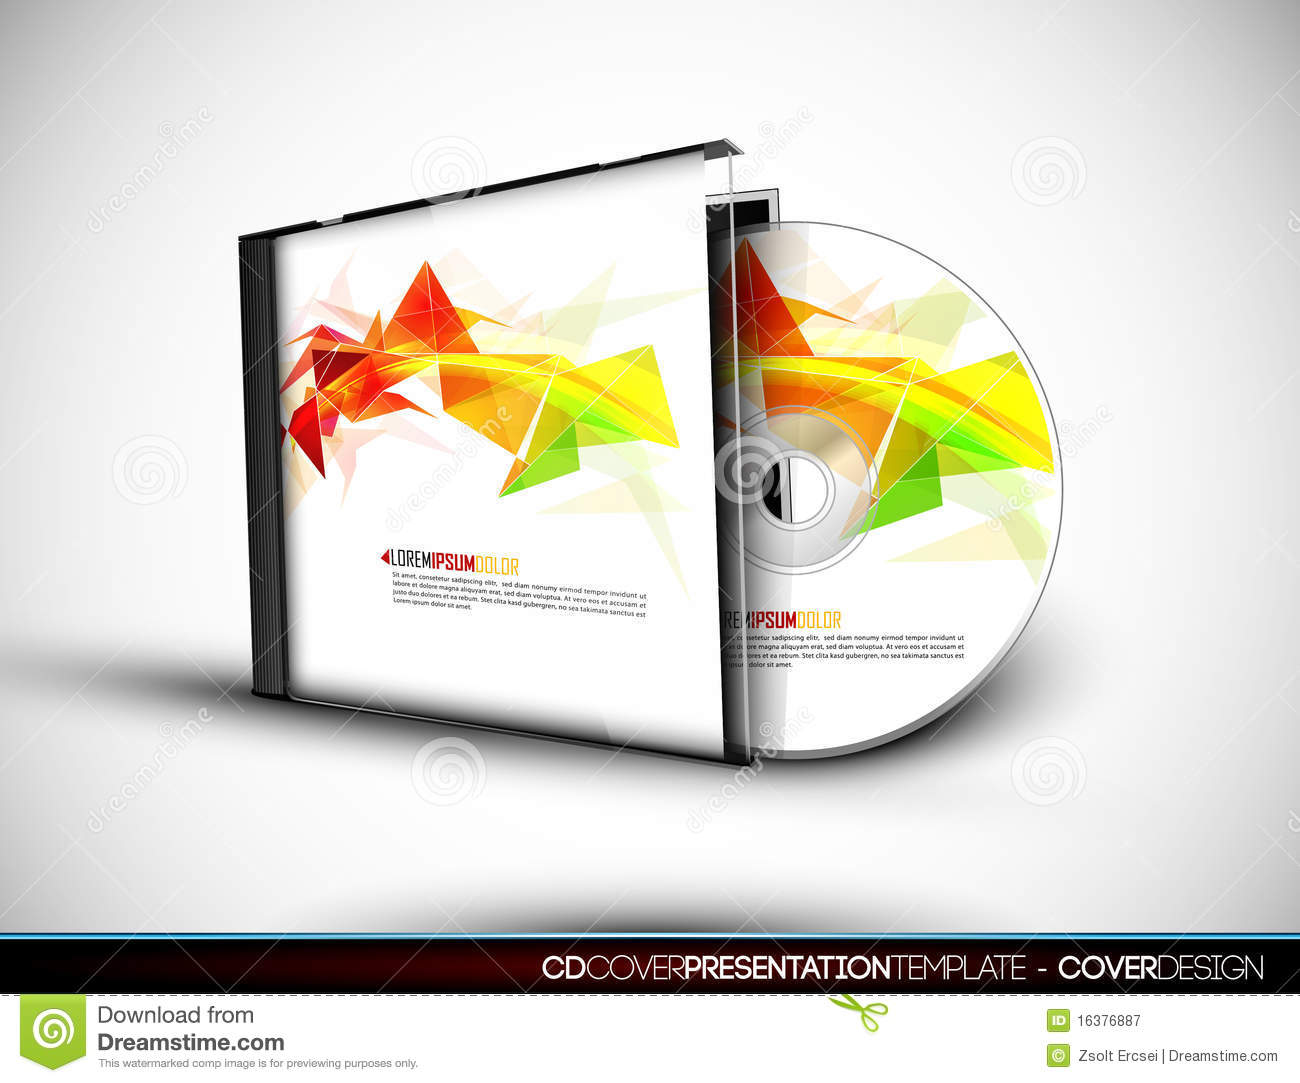 cd cover design with 3d presentation template stock vector, Presentation templates